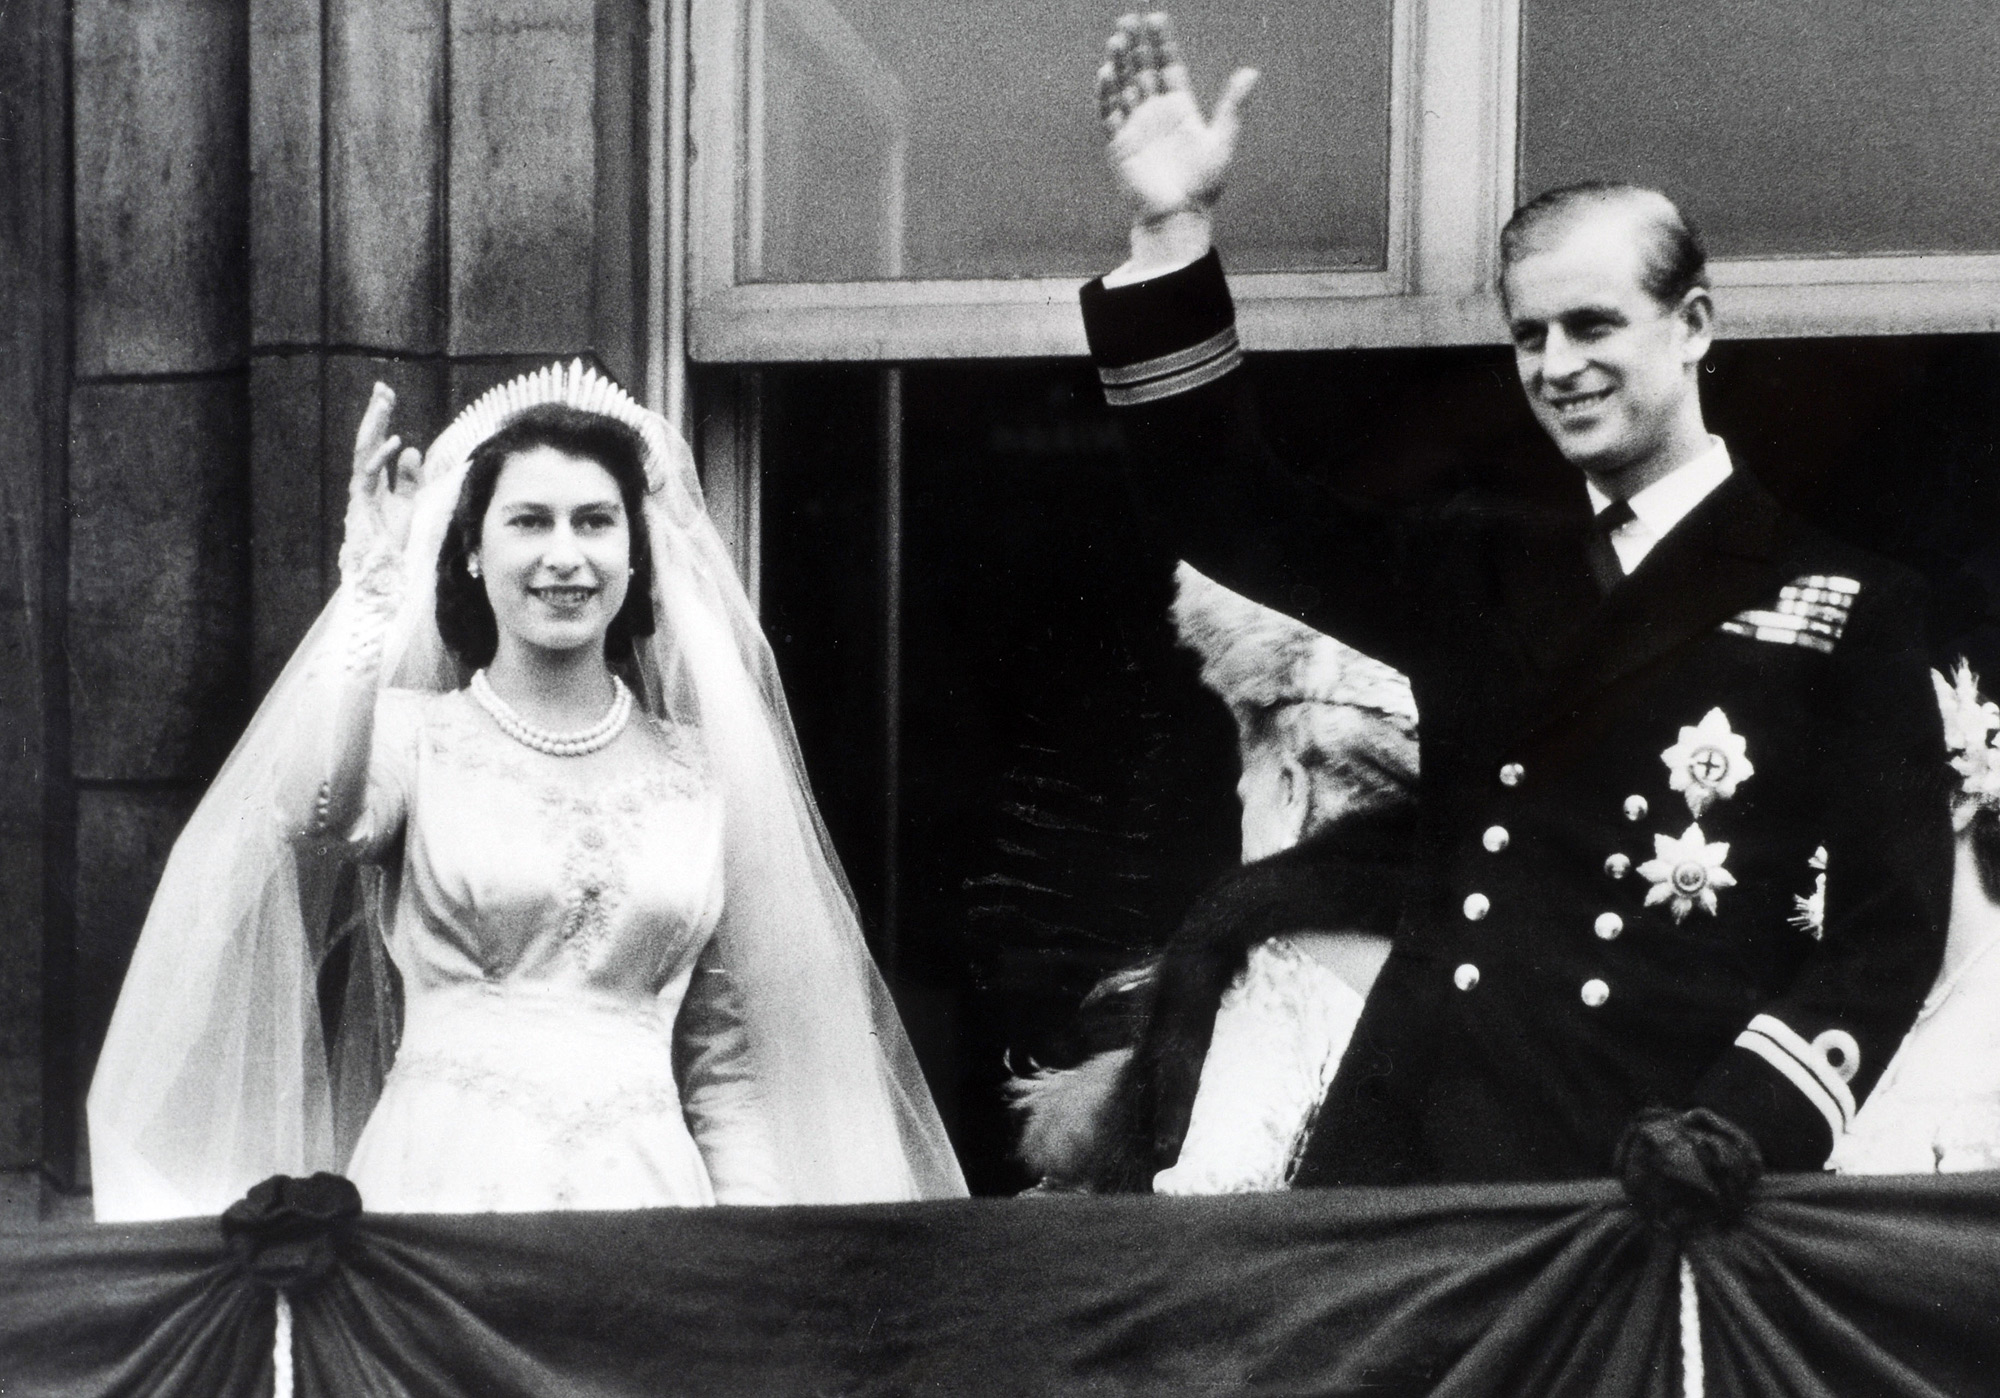 British Royalty, London, England, 20th November 1947, Princess Elizabeth (now The Queen) and Prince Philip, The Duke of Edinburgh wave to crowds from the balcony of Buckingham Palace following their marriage (Photo by Popperfoto/Getty Images)